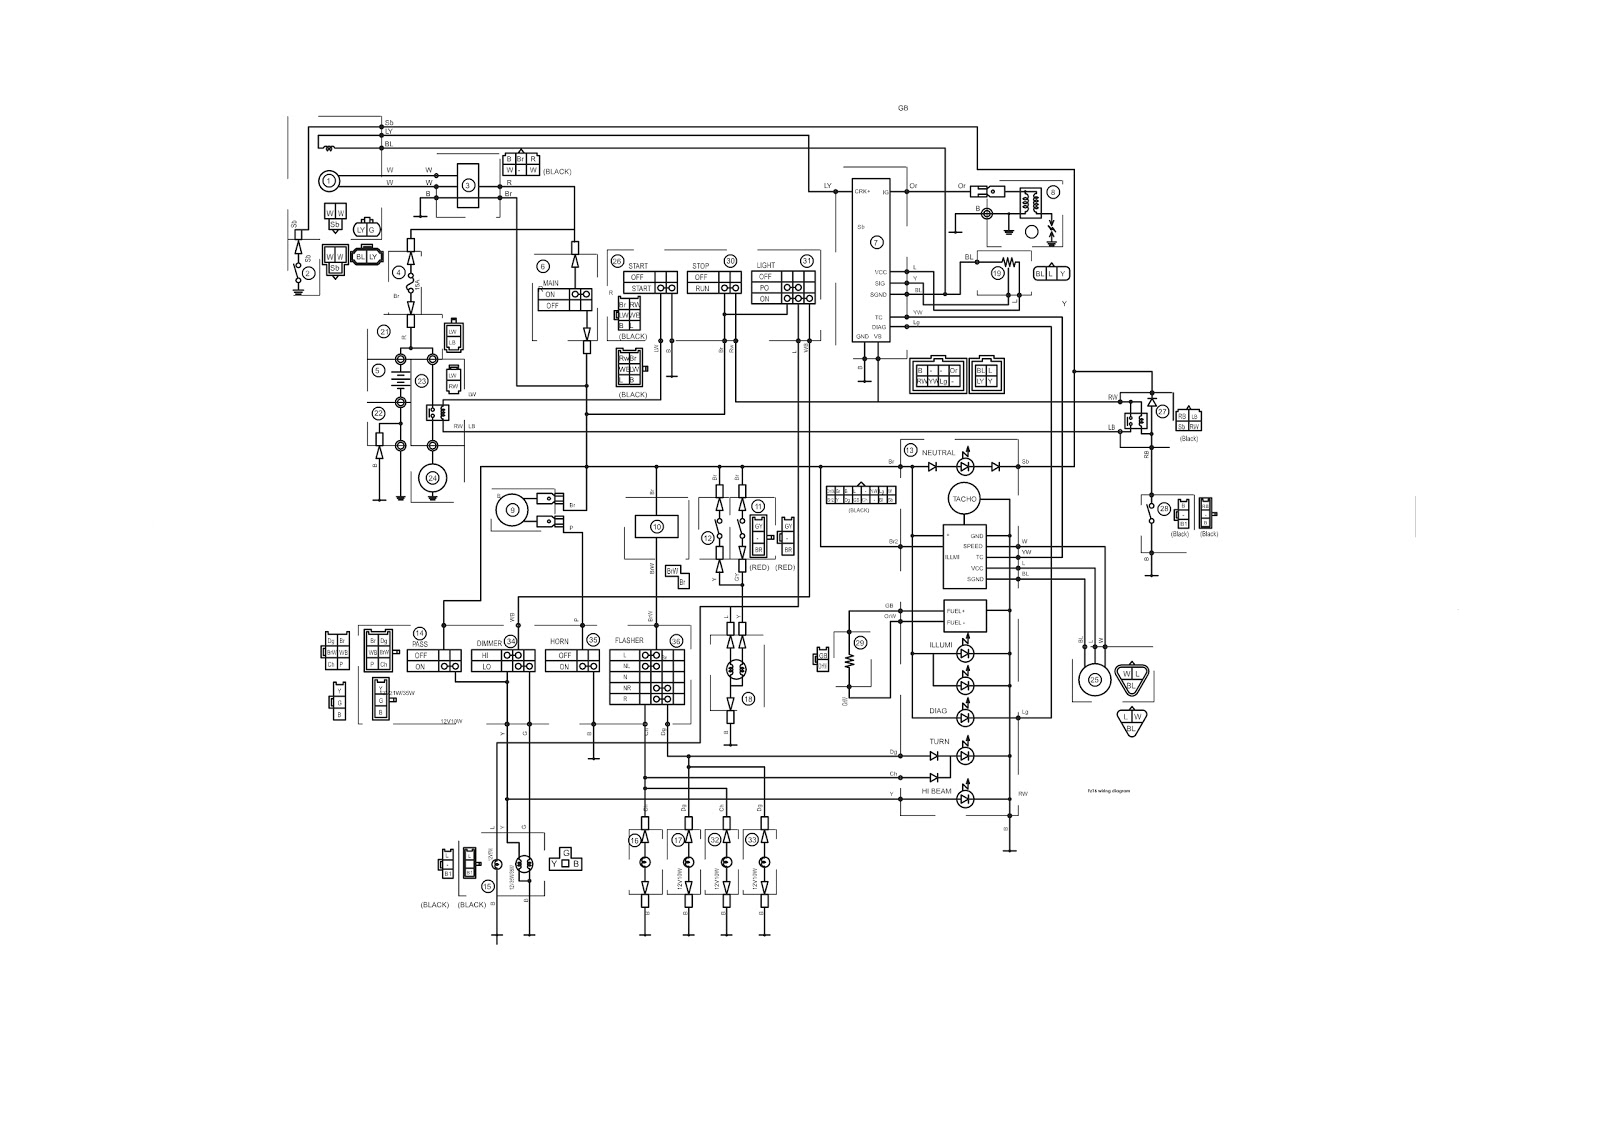 Fz700 Wiring Diagram Diagram Get Free Image About Wiring Diagram – Xv750 Wiring Diagram 1985